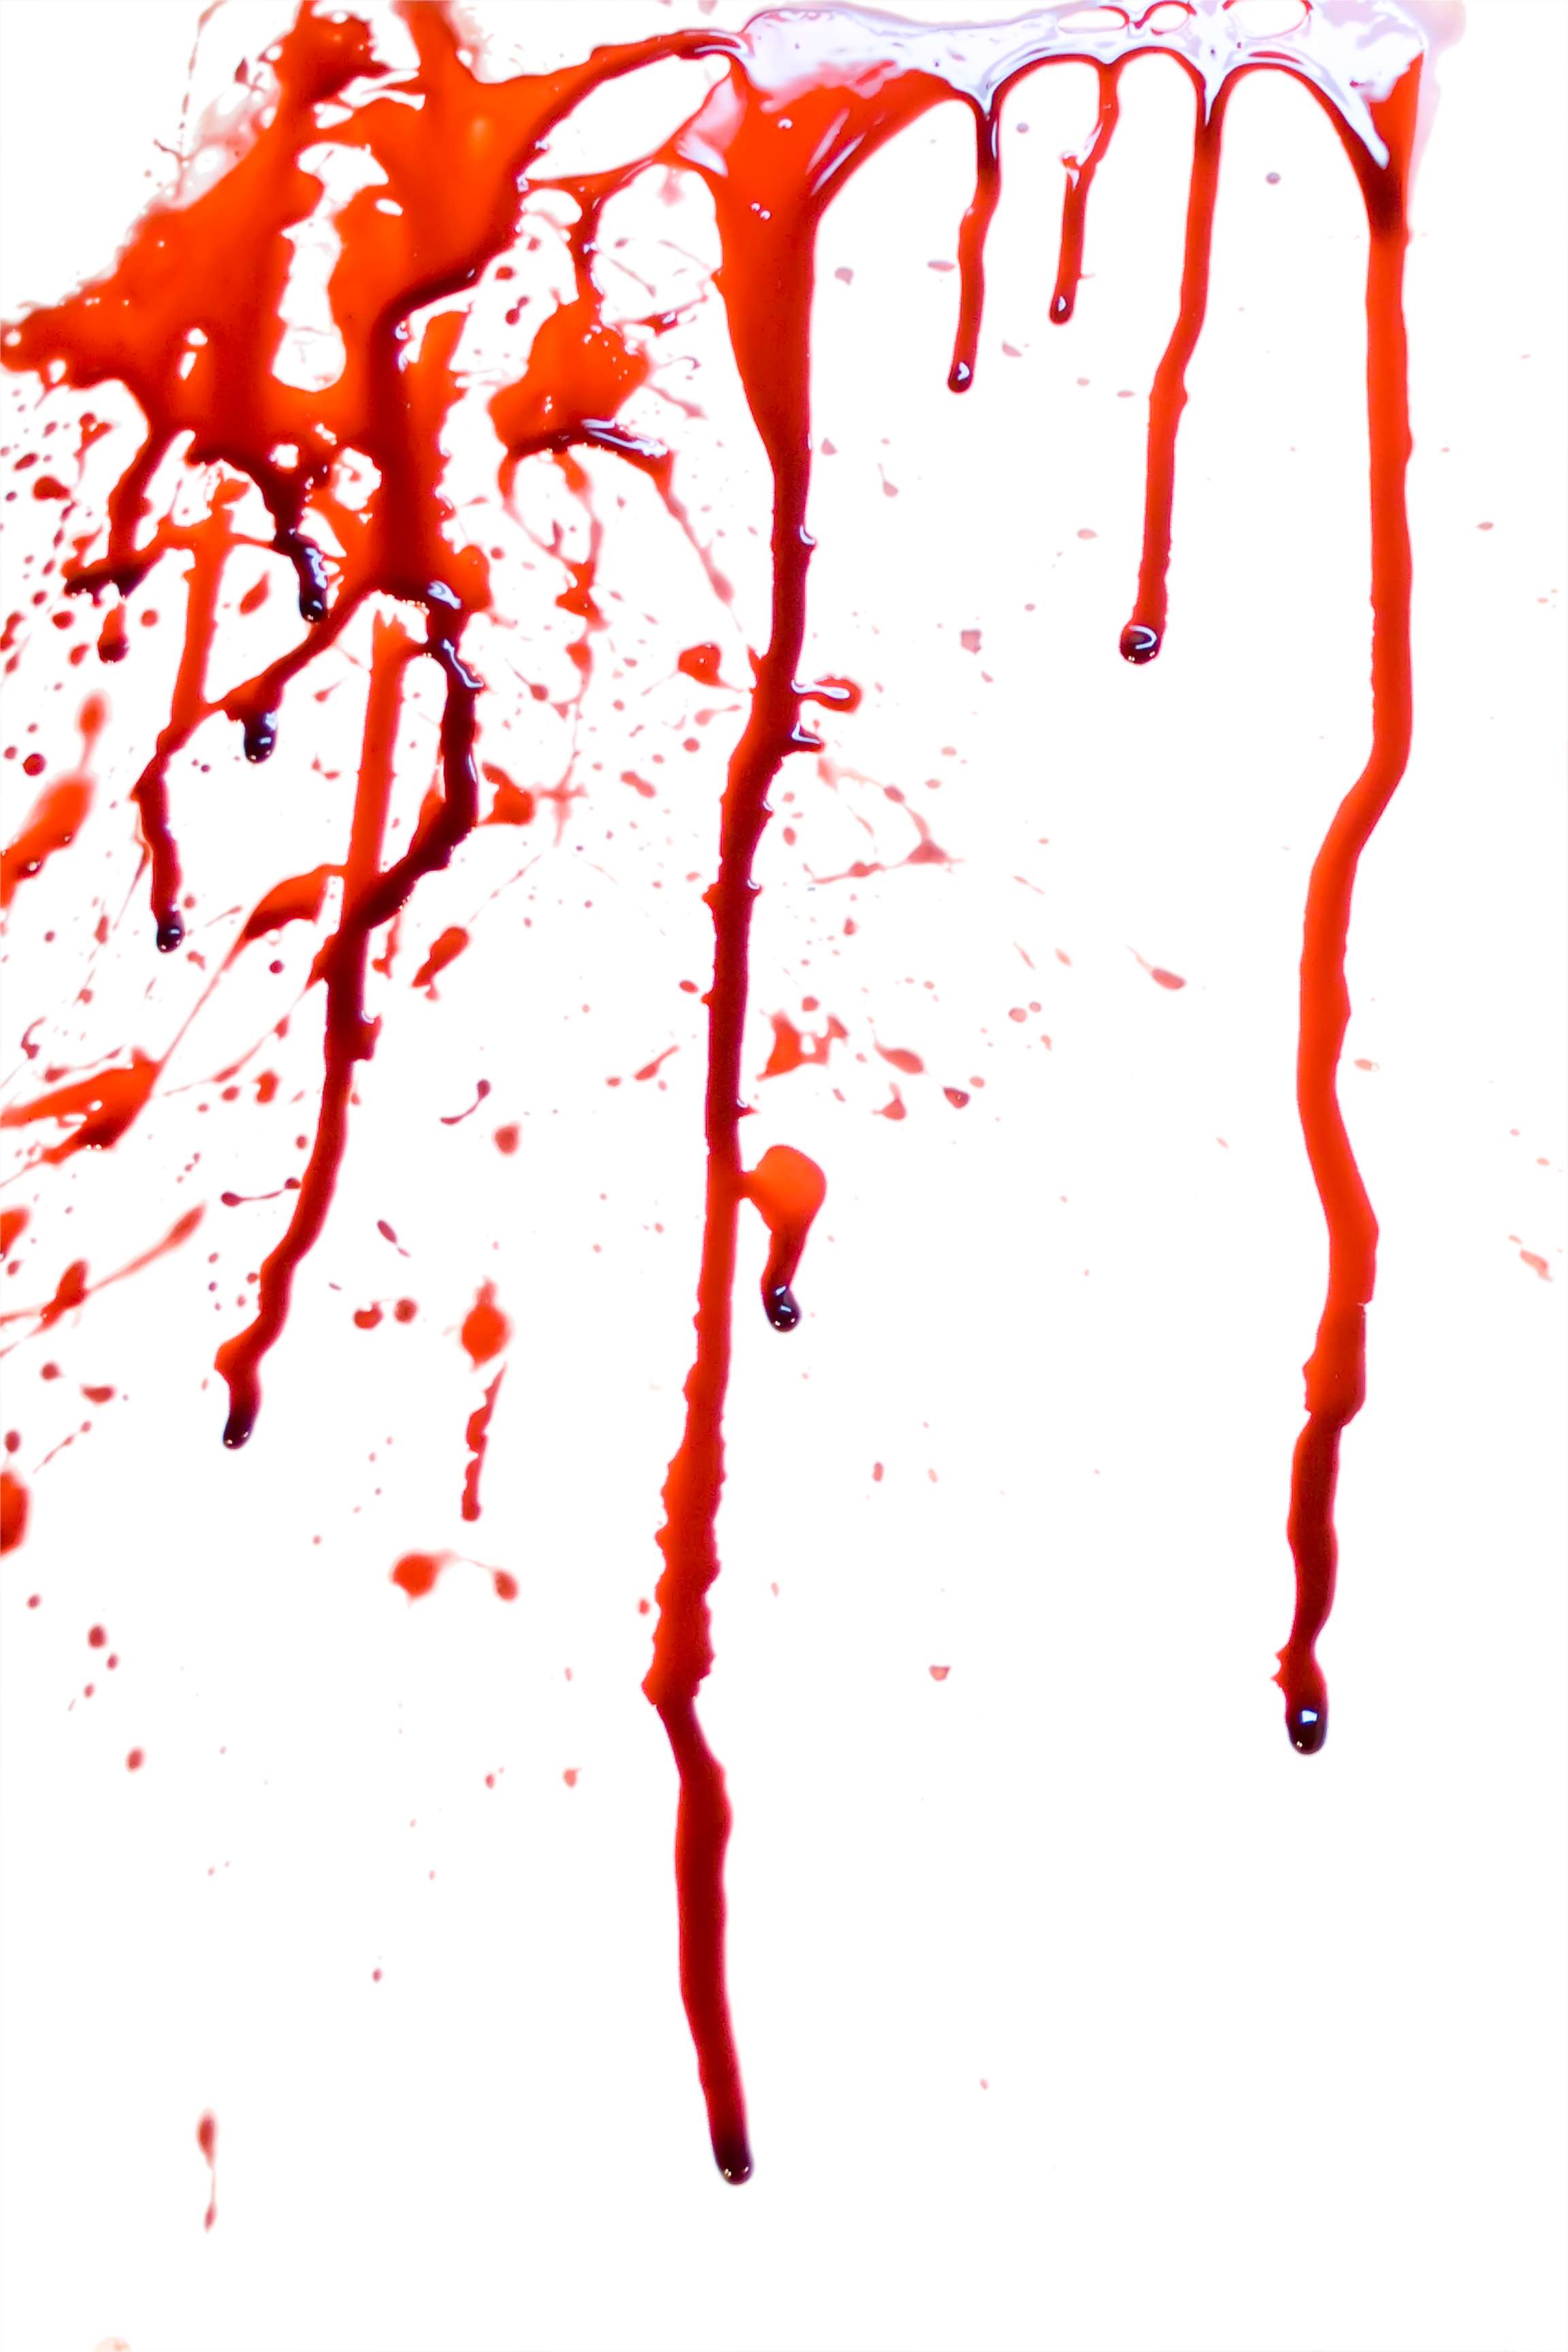 Blood drip .png. Png images free download